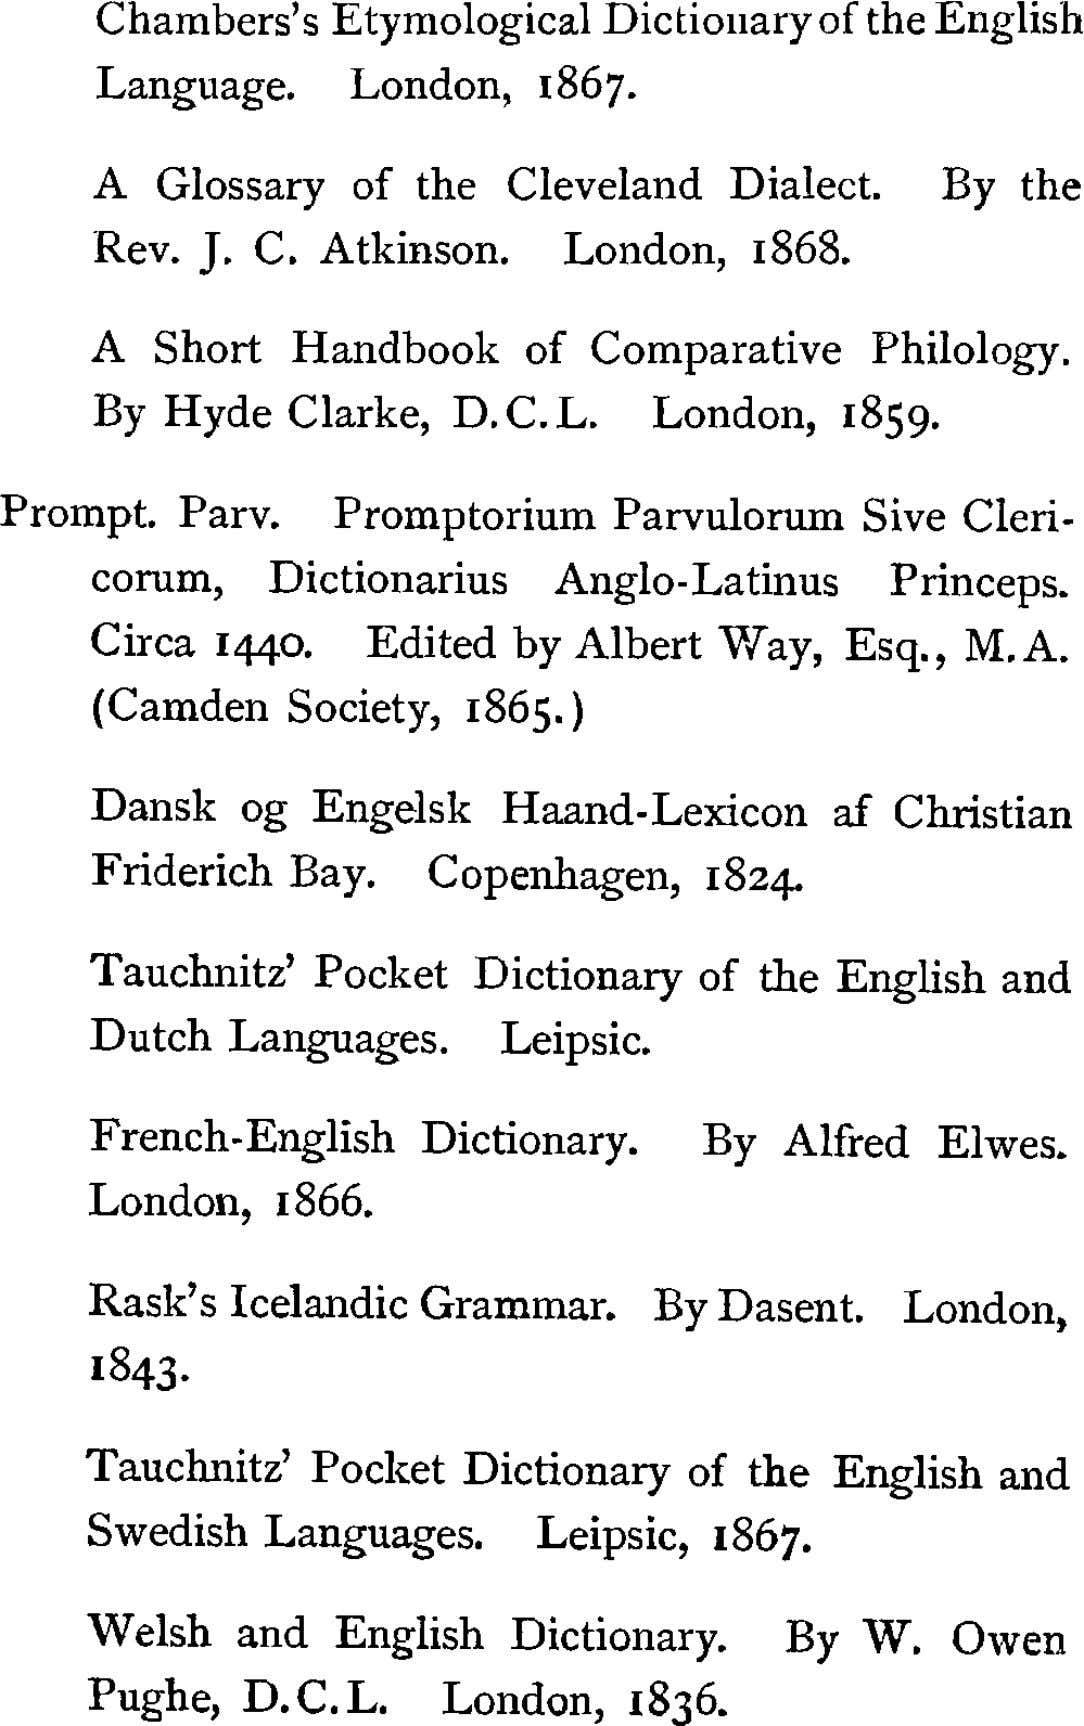 Chambers's Etymological Dictionary of the English Language. London, 1867. A Glossary of the Cleveland